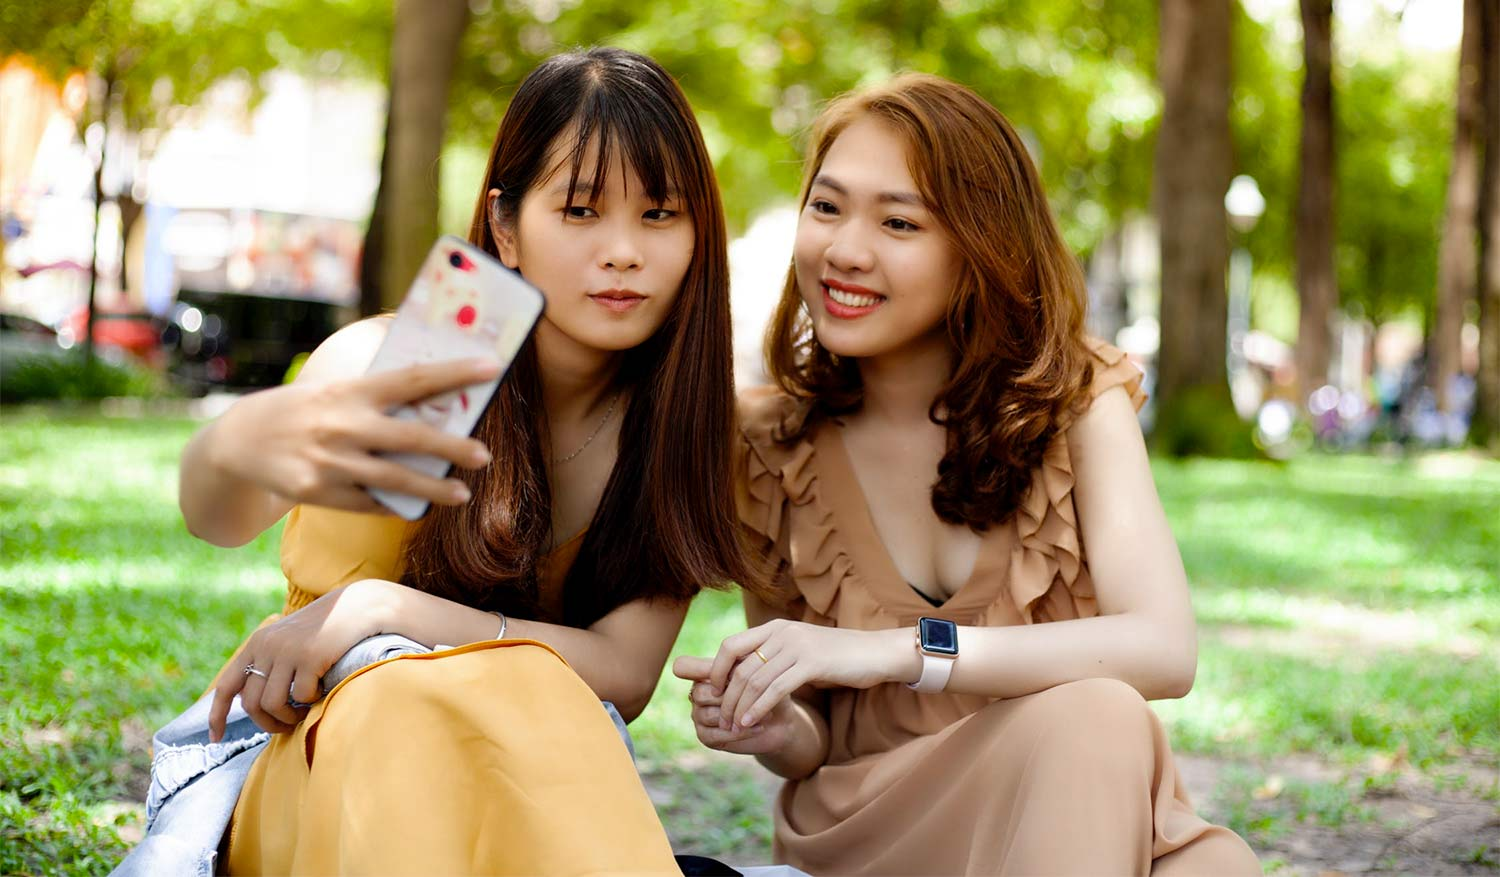 It's Time for Marketers to Take a Good Look at TikTok - Branding in Asia Magazine